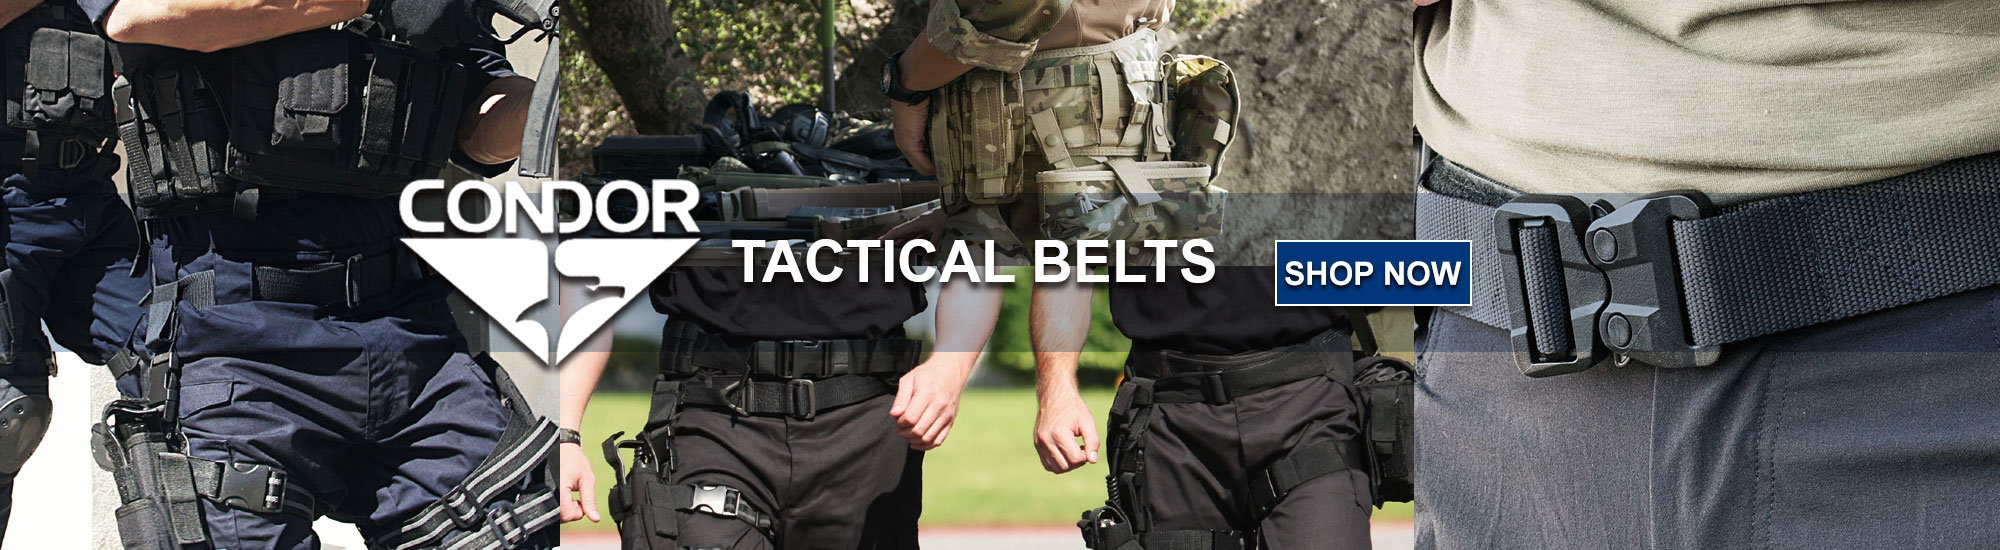 Shop Condor Tactical Belts